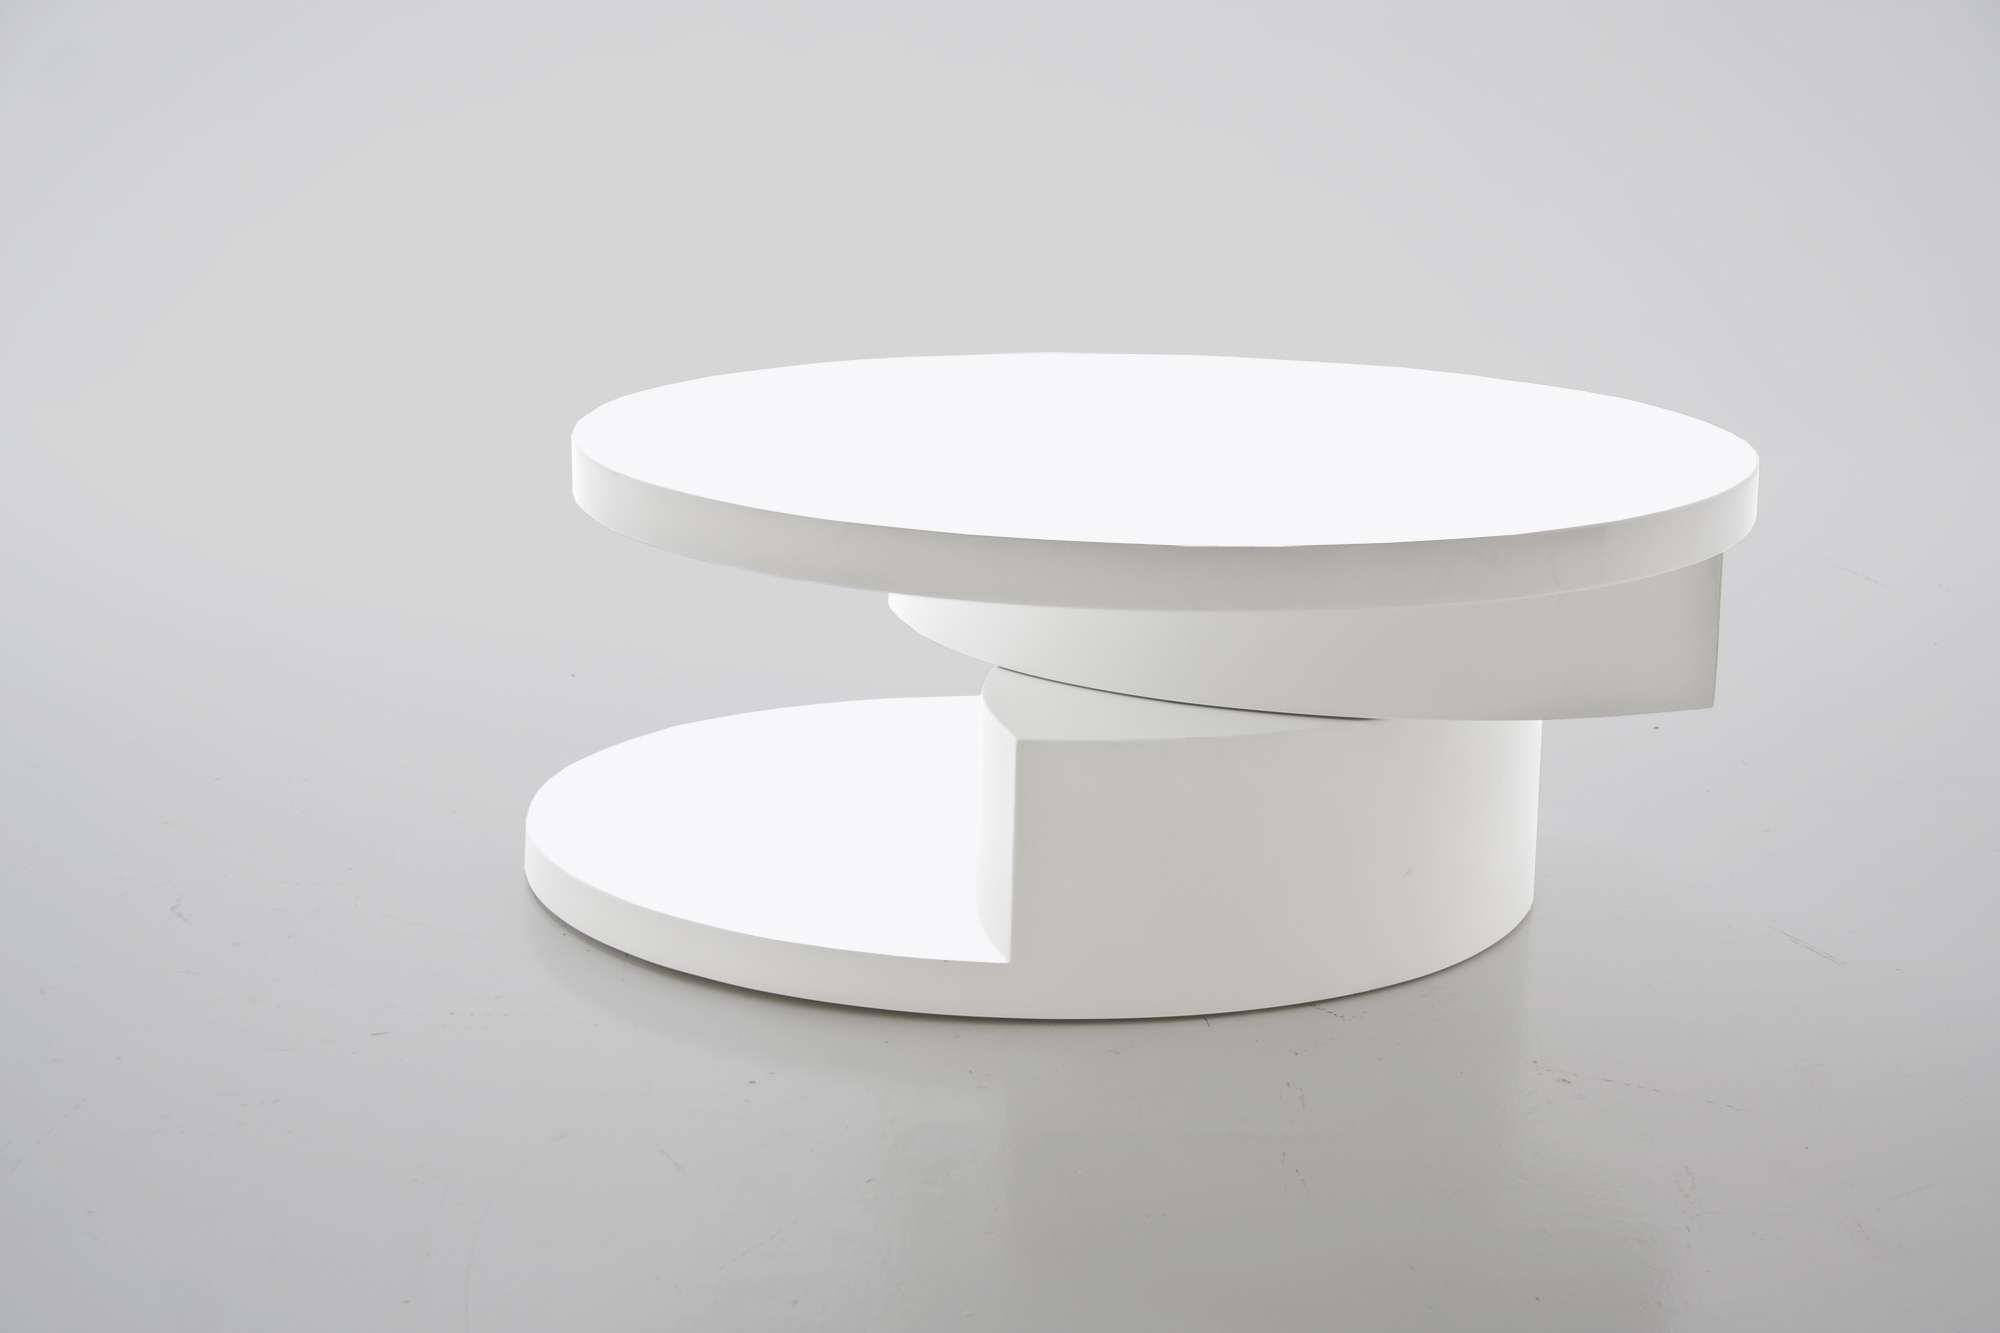 Coffee Tables : White Glass Coffee Table Tofteryd High Gloss Ikea With Regard To 2018 Revolving Glass Coffee Tables (View 12 of 20)